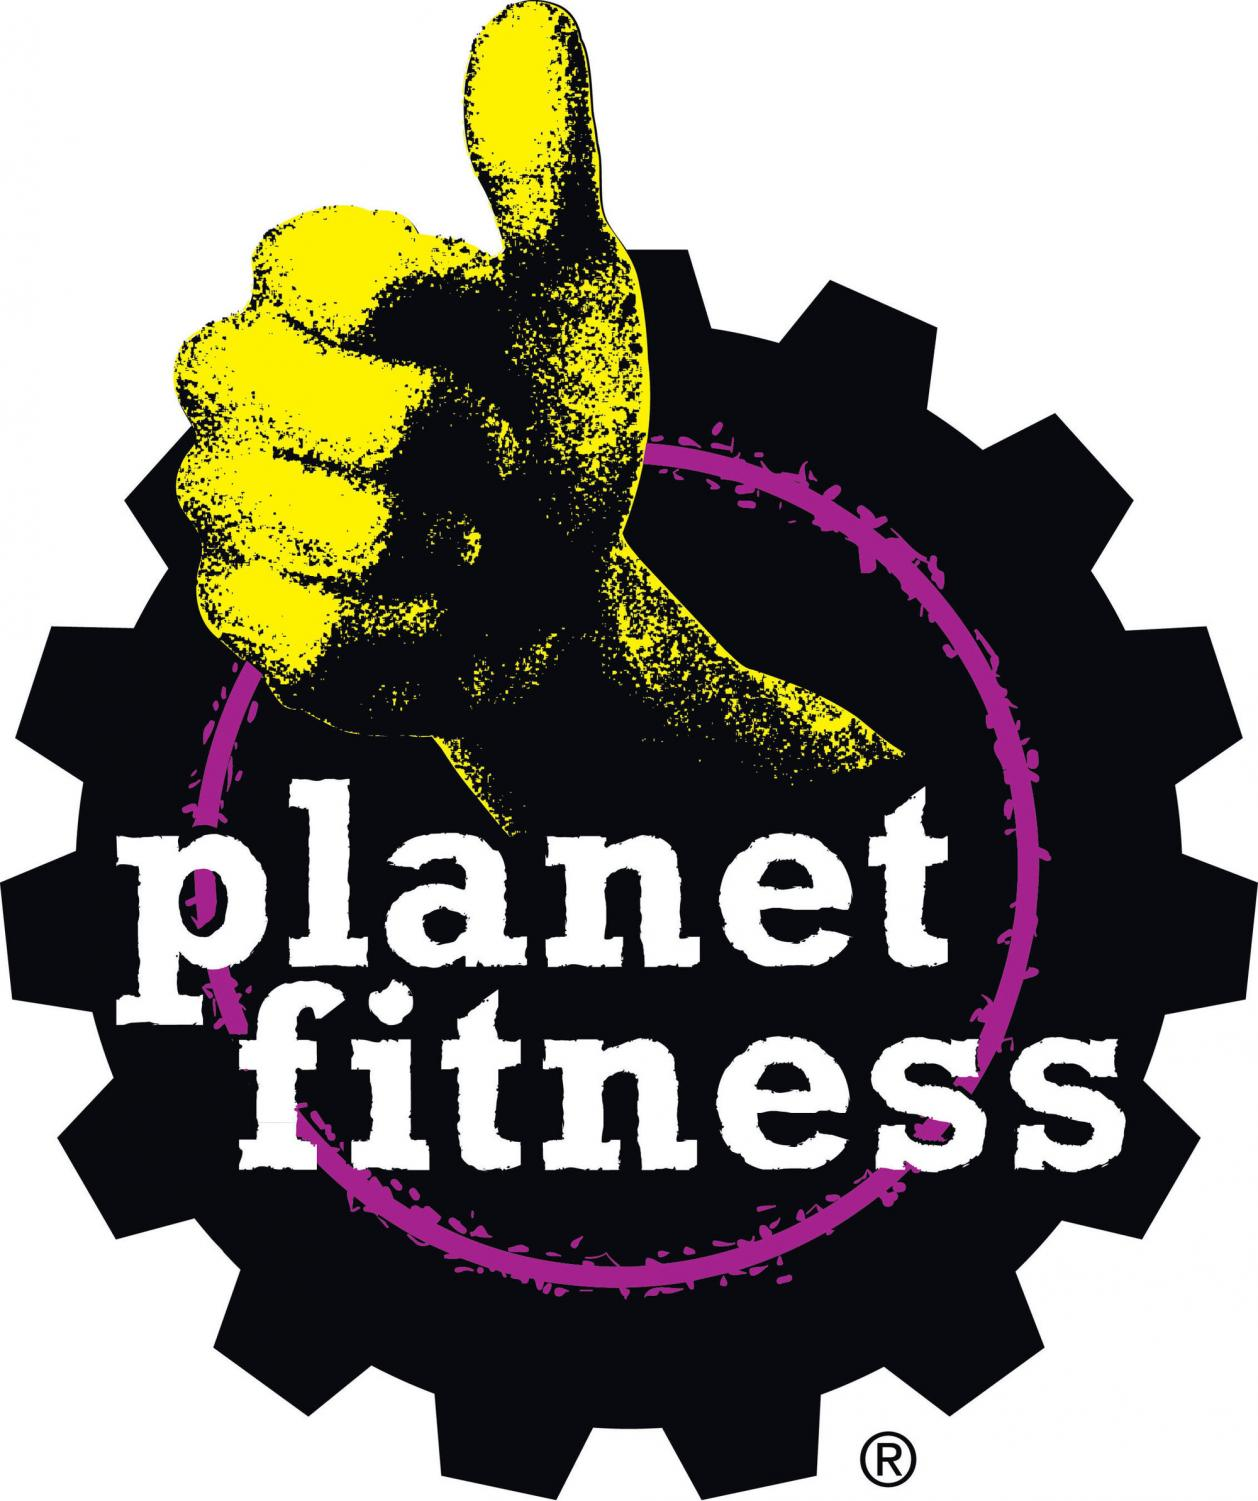 Gyms like Planet Fitness provide many workout opportunities that fit in busy teens' schedules.